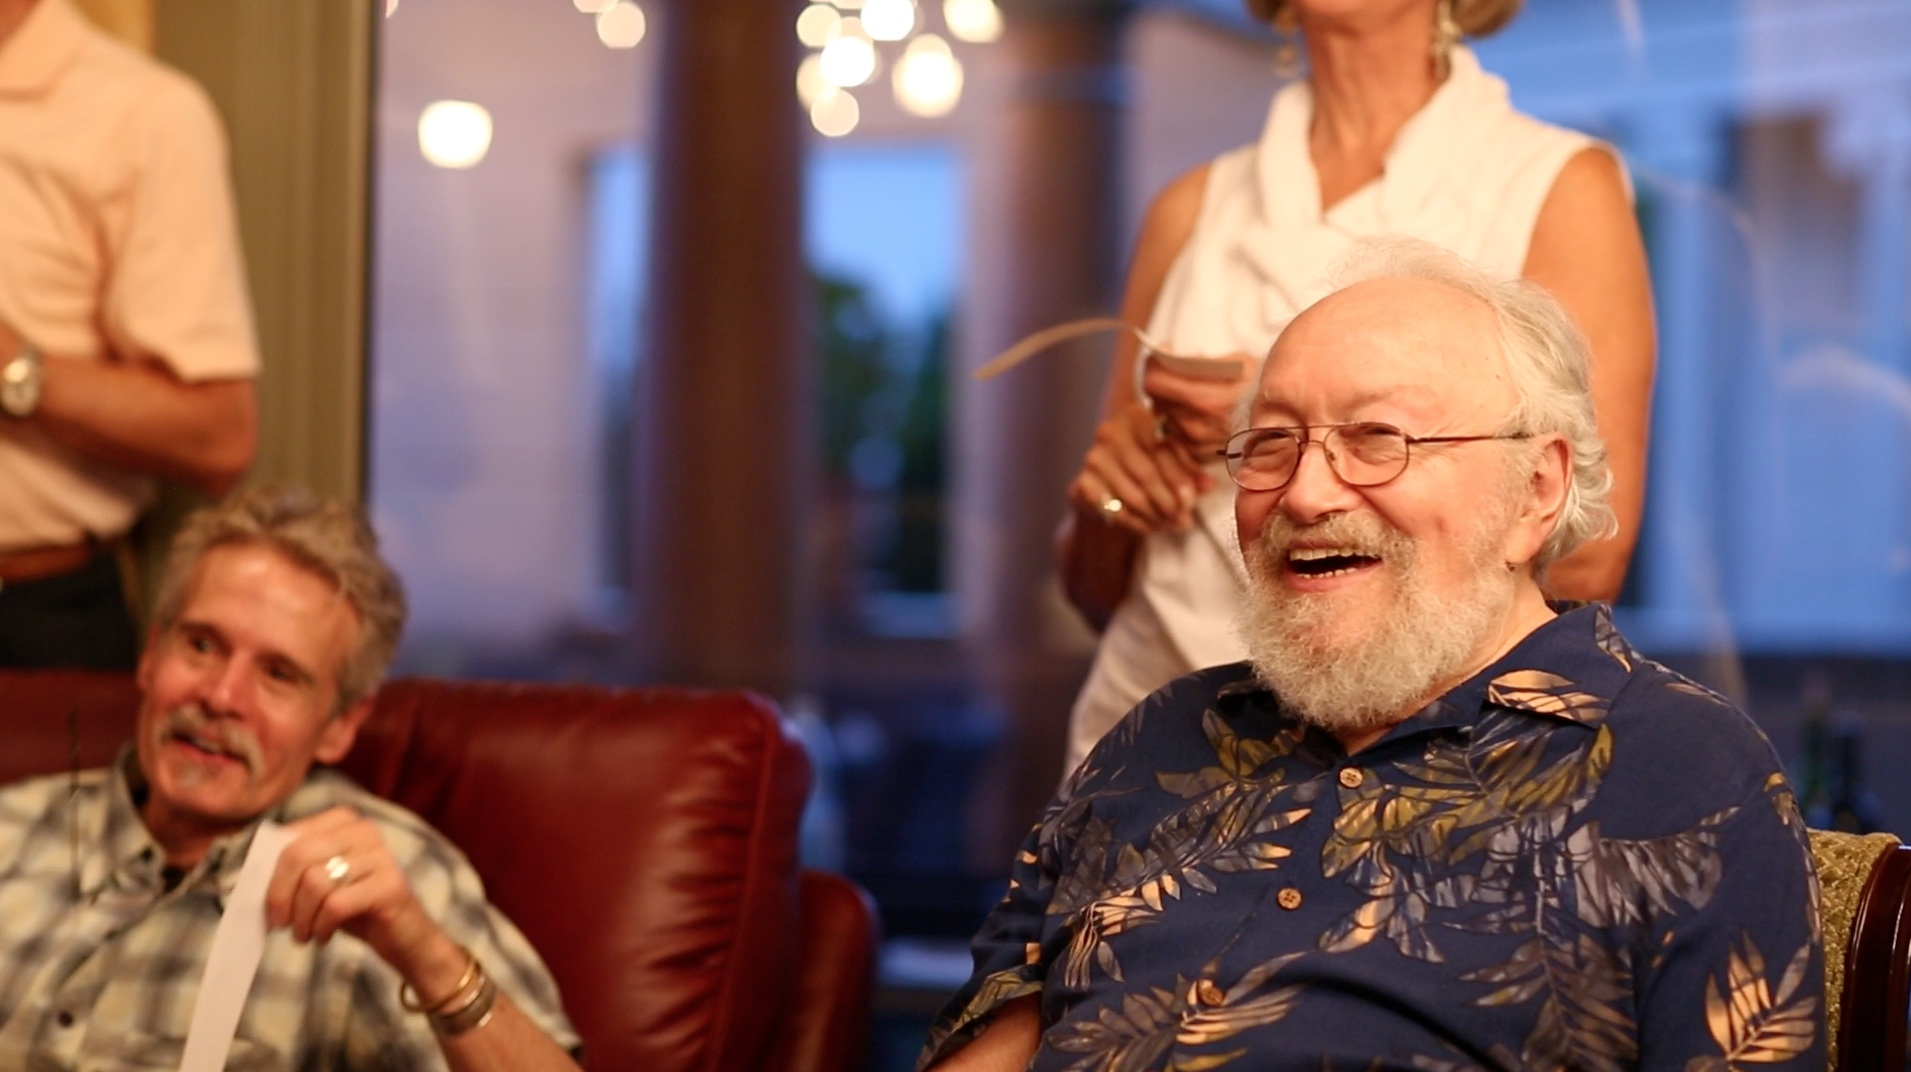 Old friend, student and printer, David Caras shares a laugh with Harold